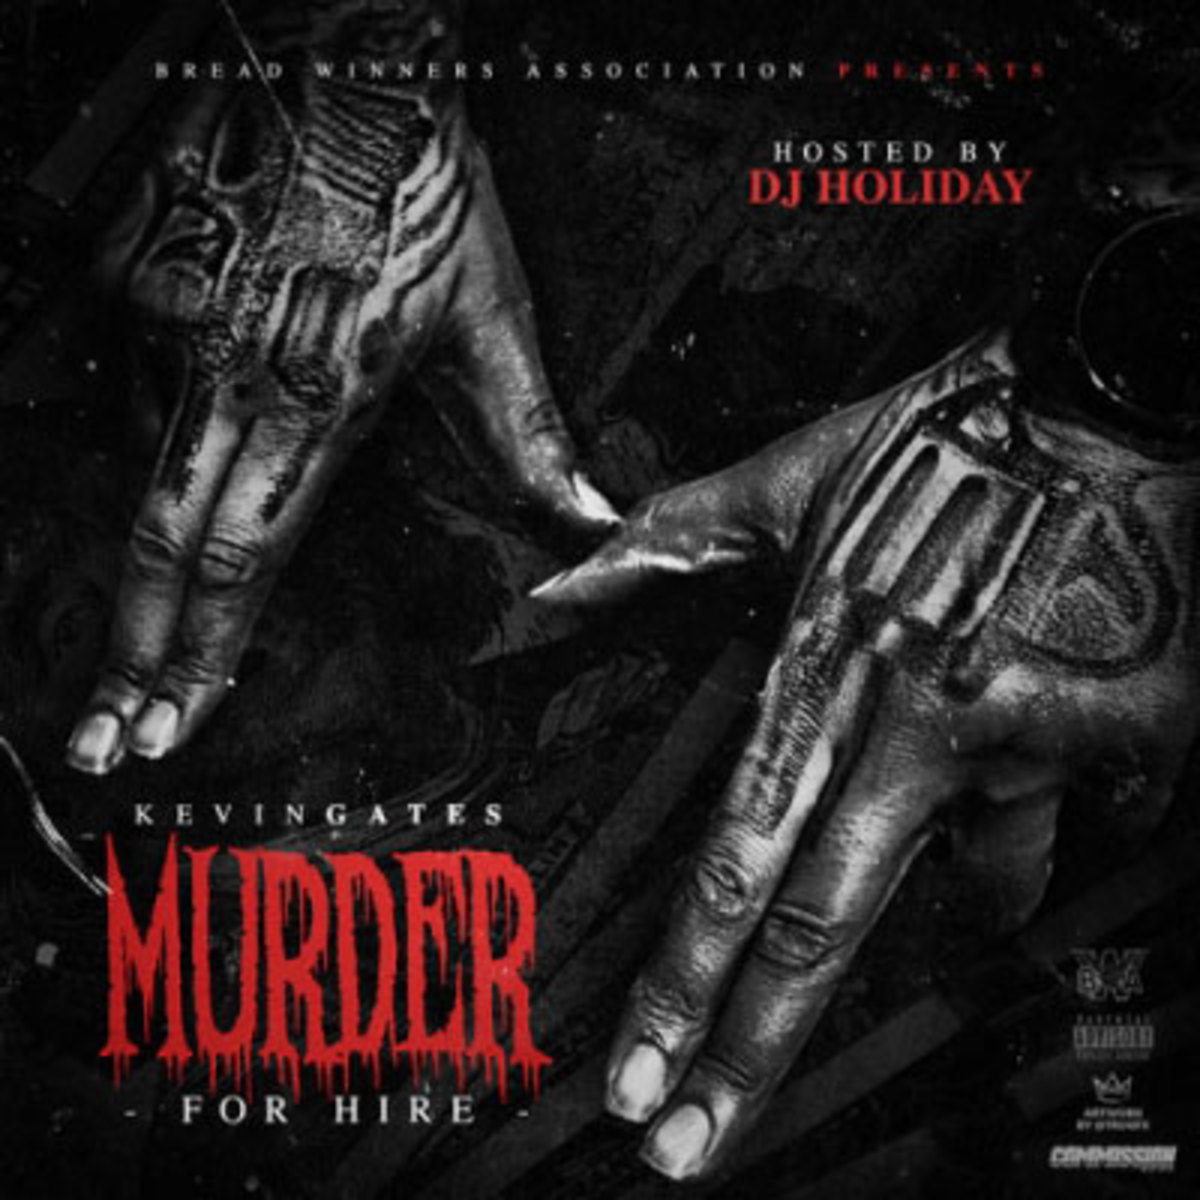 kevin-gates-murder-for-hire.jpg